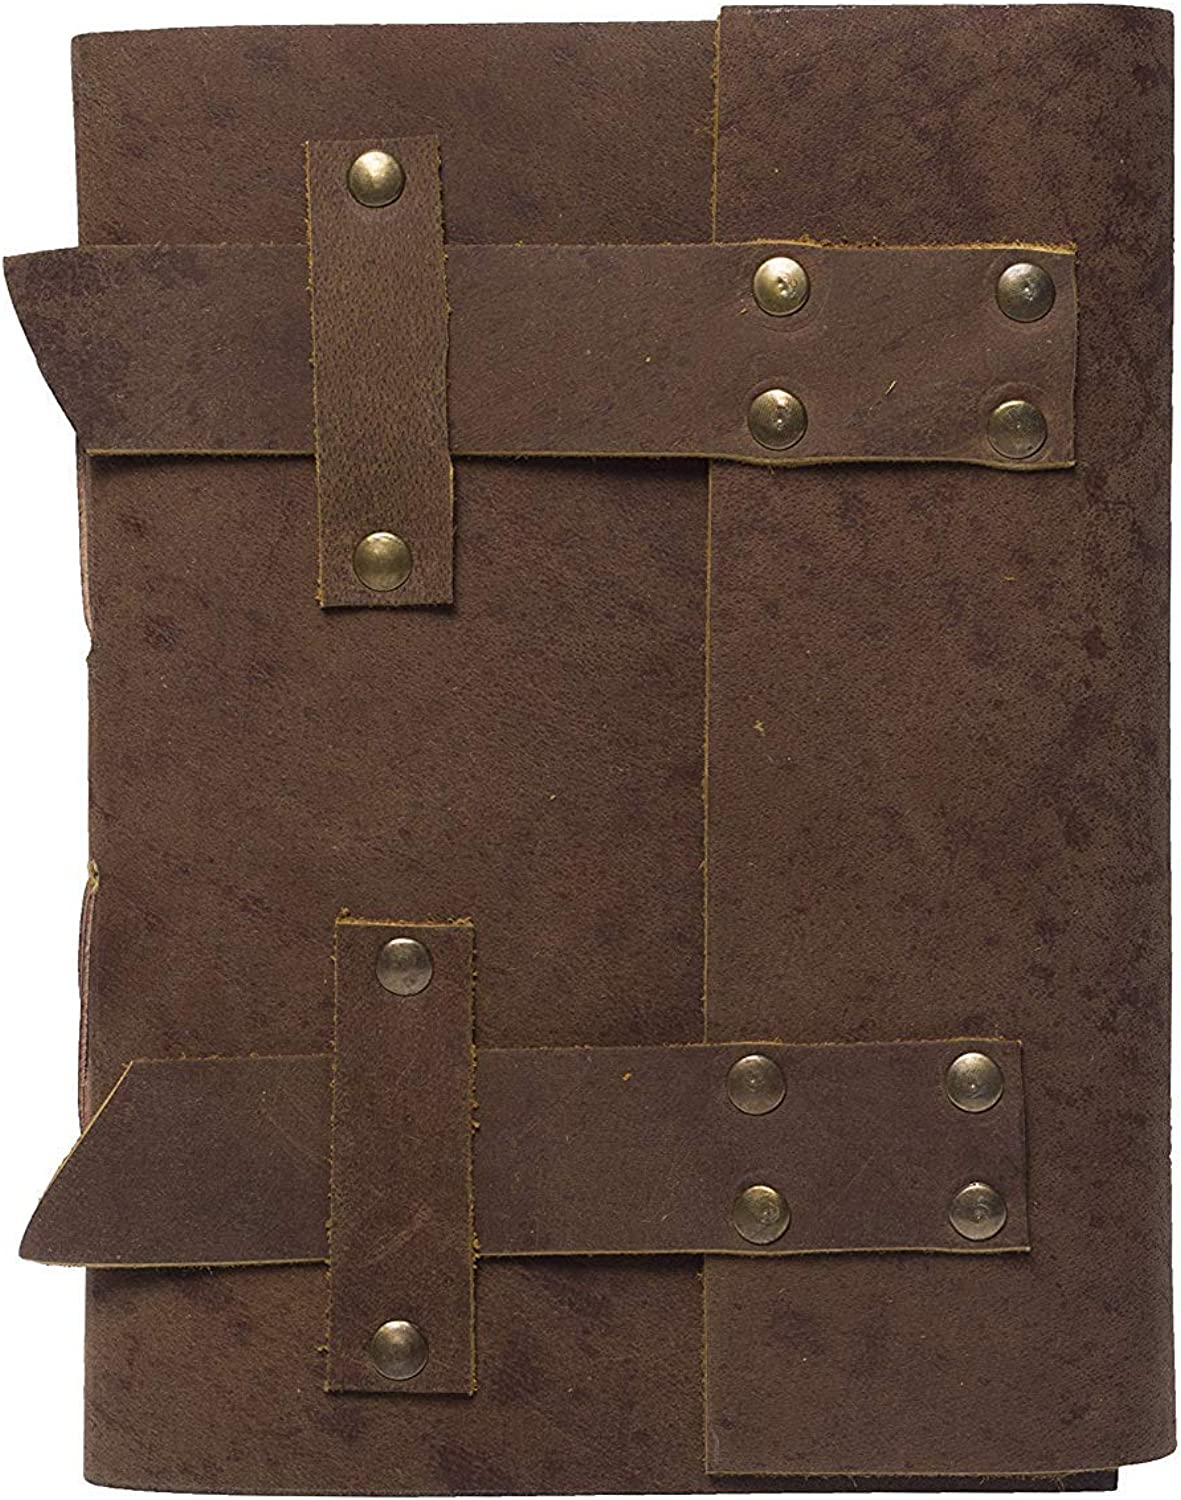 PRASTARA Handmade Owl Embossed Leather Goat Journal Pocket Style color 7x5 Blank Pages Tanned color (7x1.5x5, Umber)